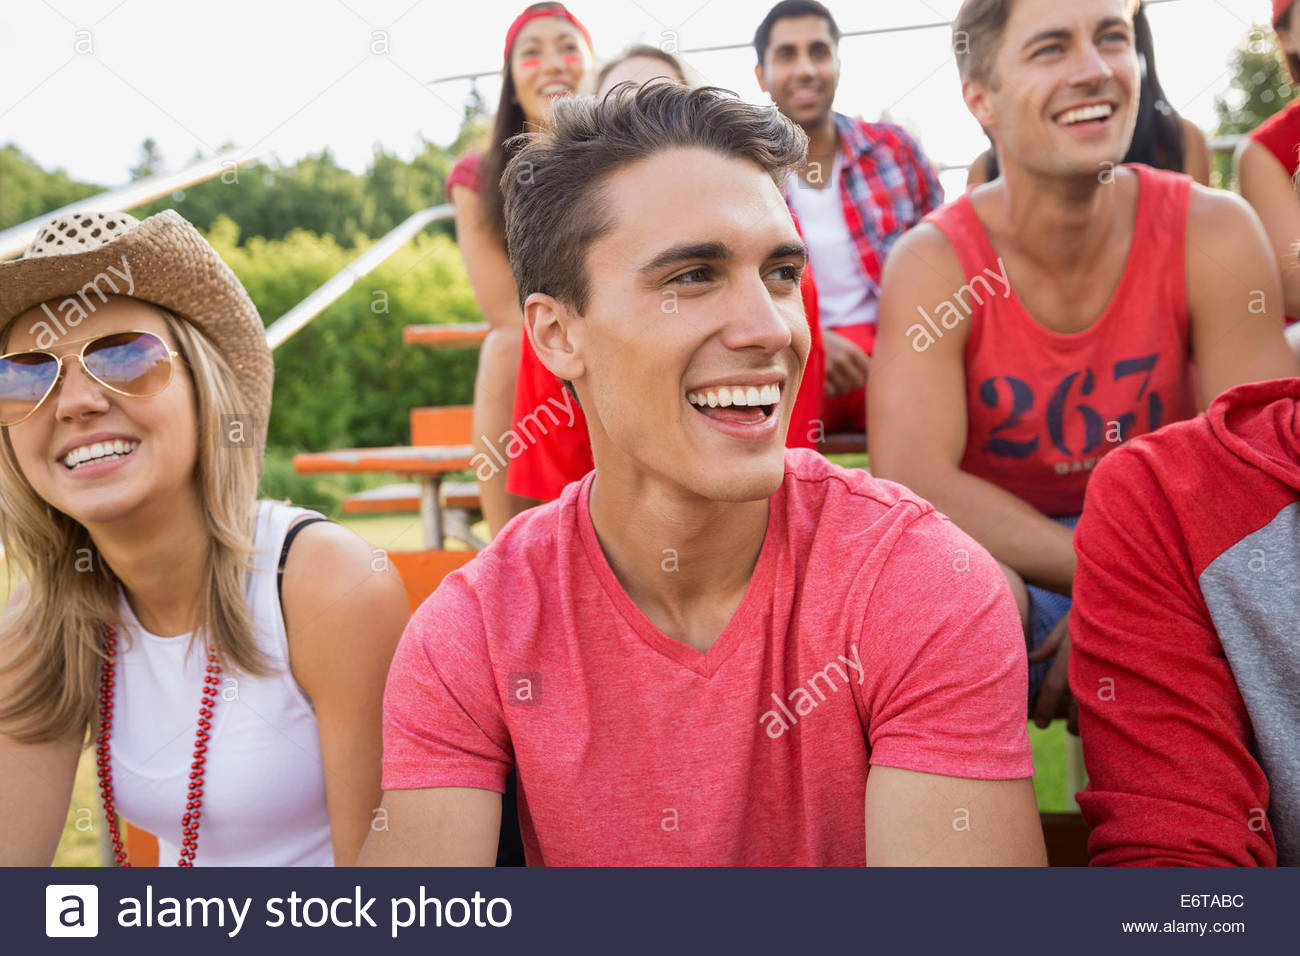 Man laughing at sporting event - Stock Image